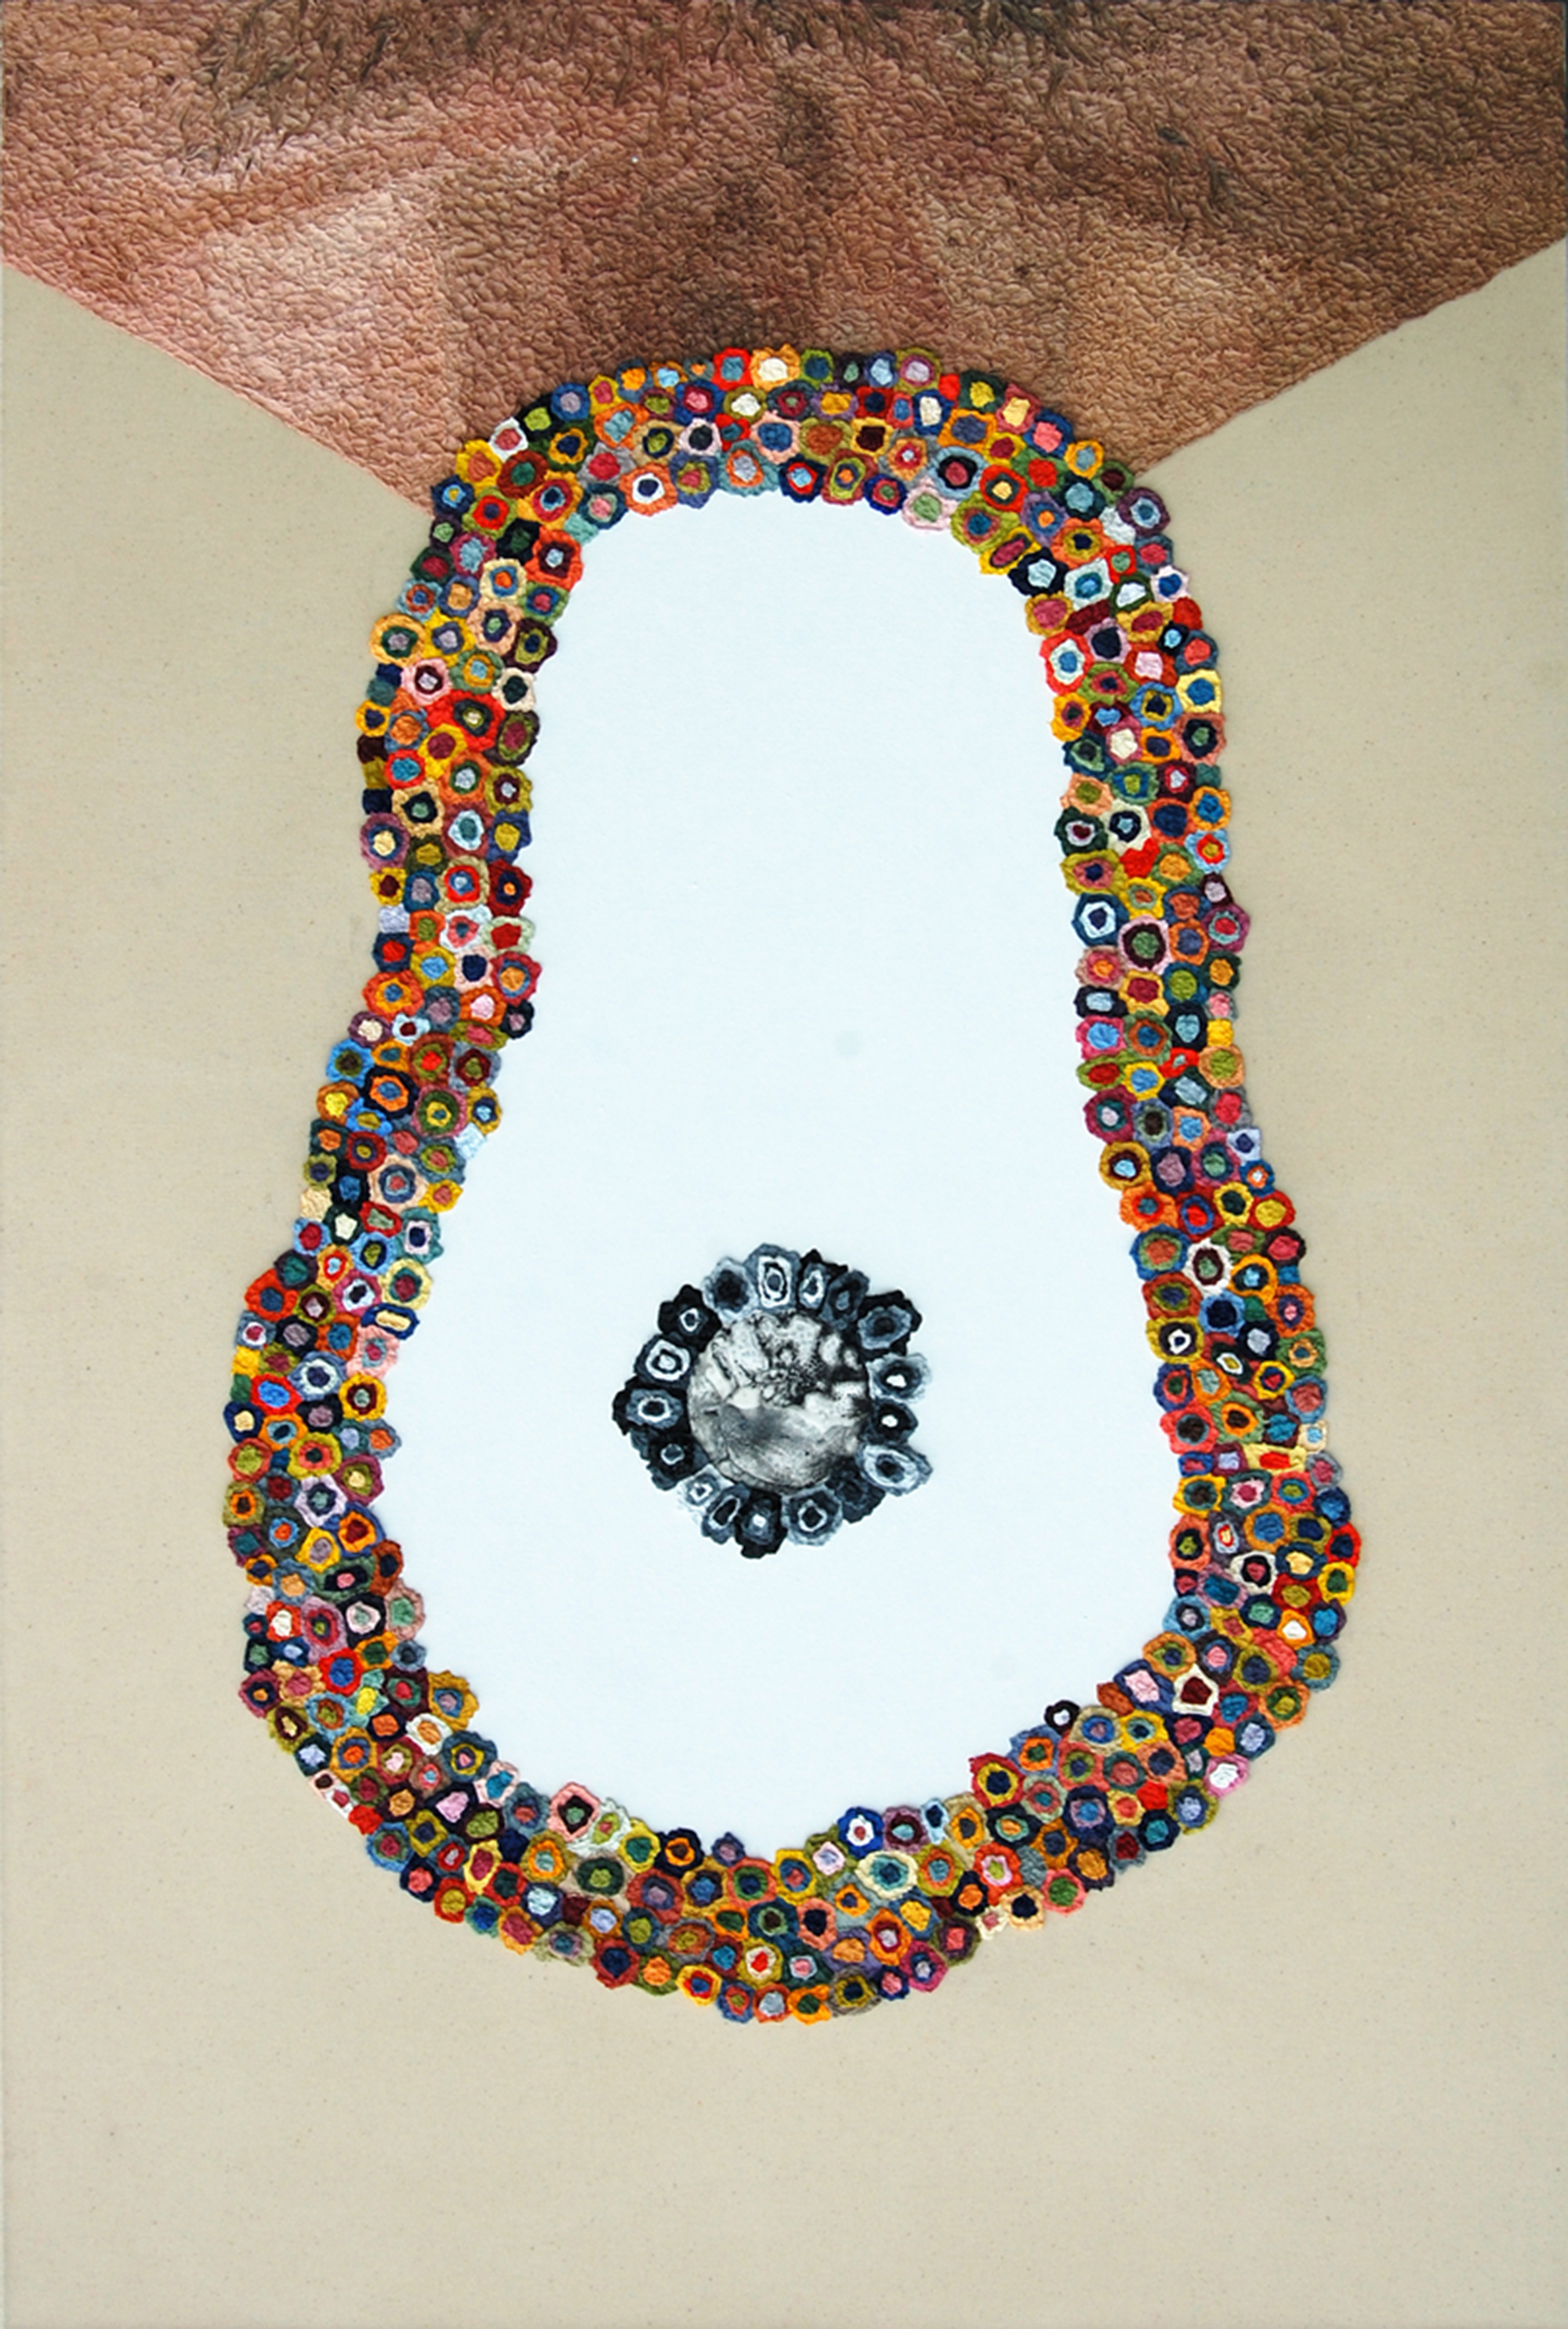 AP XV (The Discovery of Up and Down), 2010  |  48 x 32 inches  | oil, polyurethane and gouache on canvas